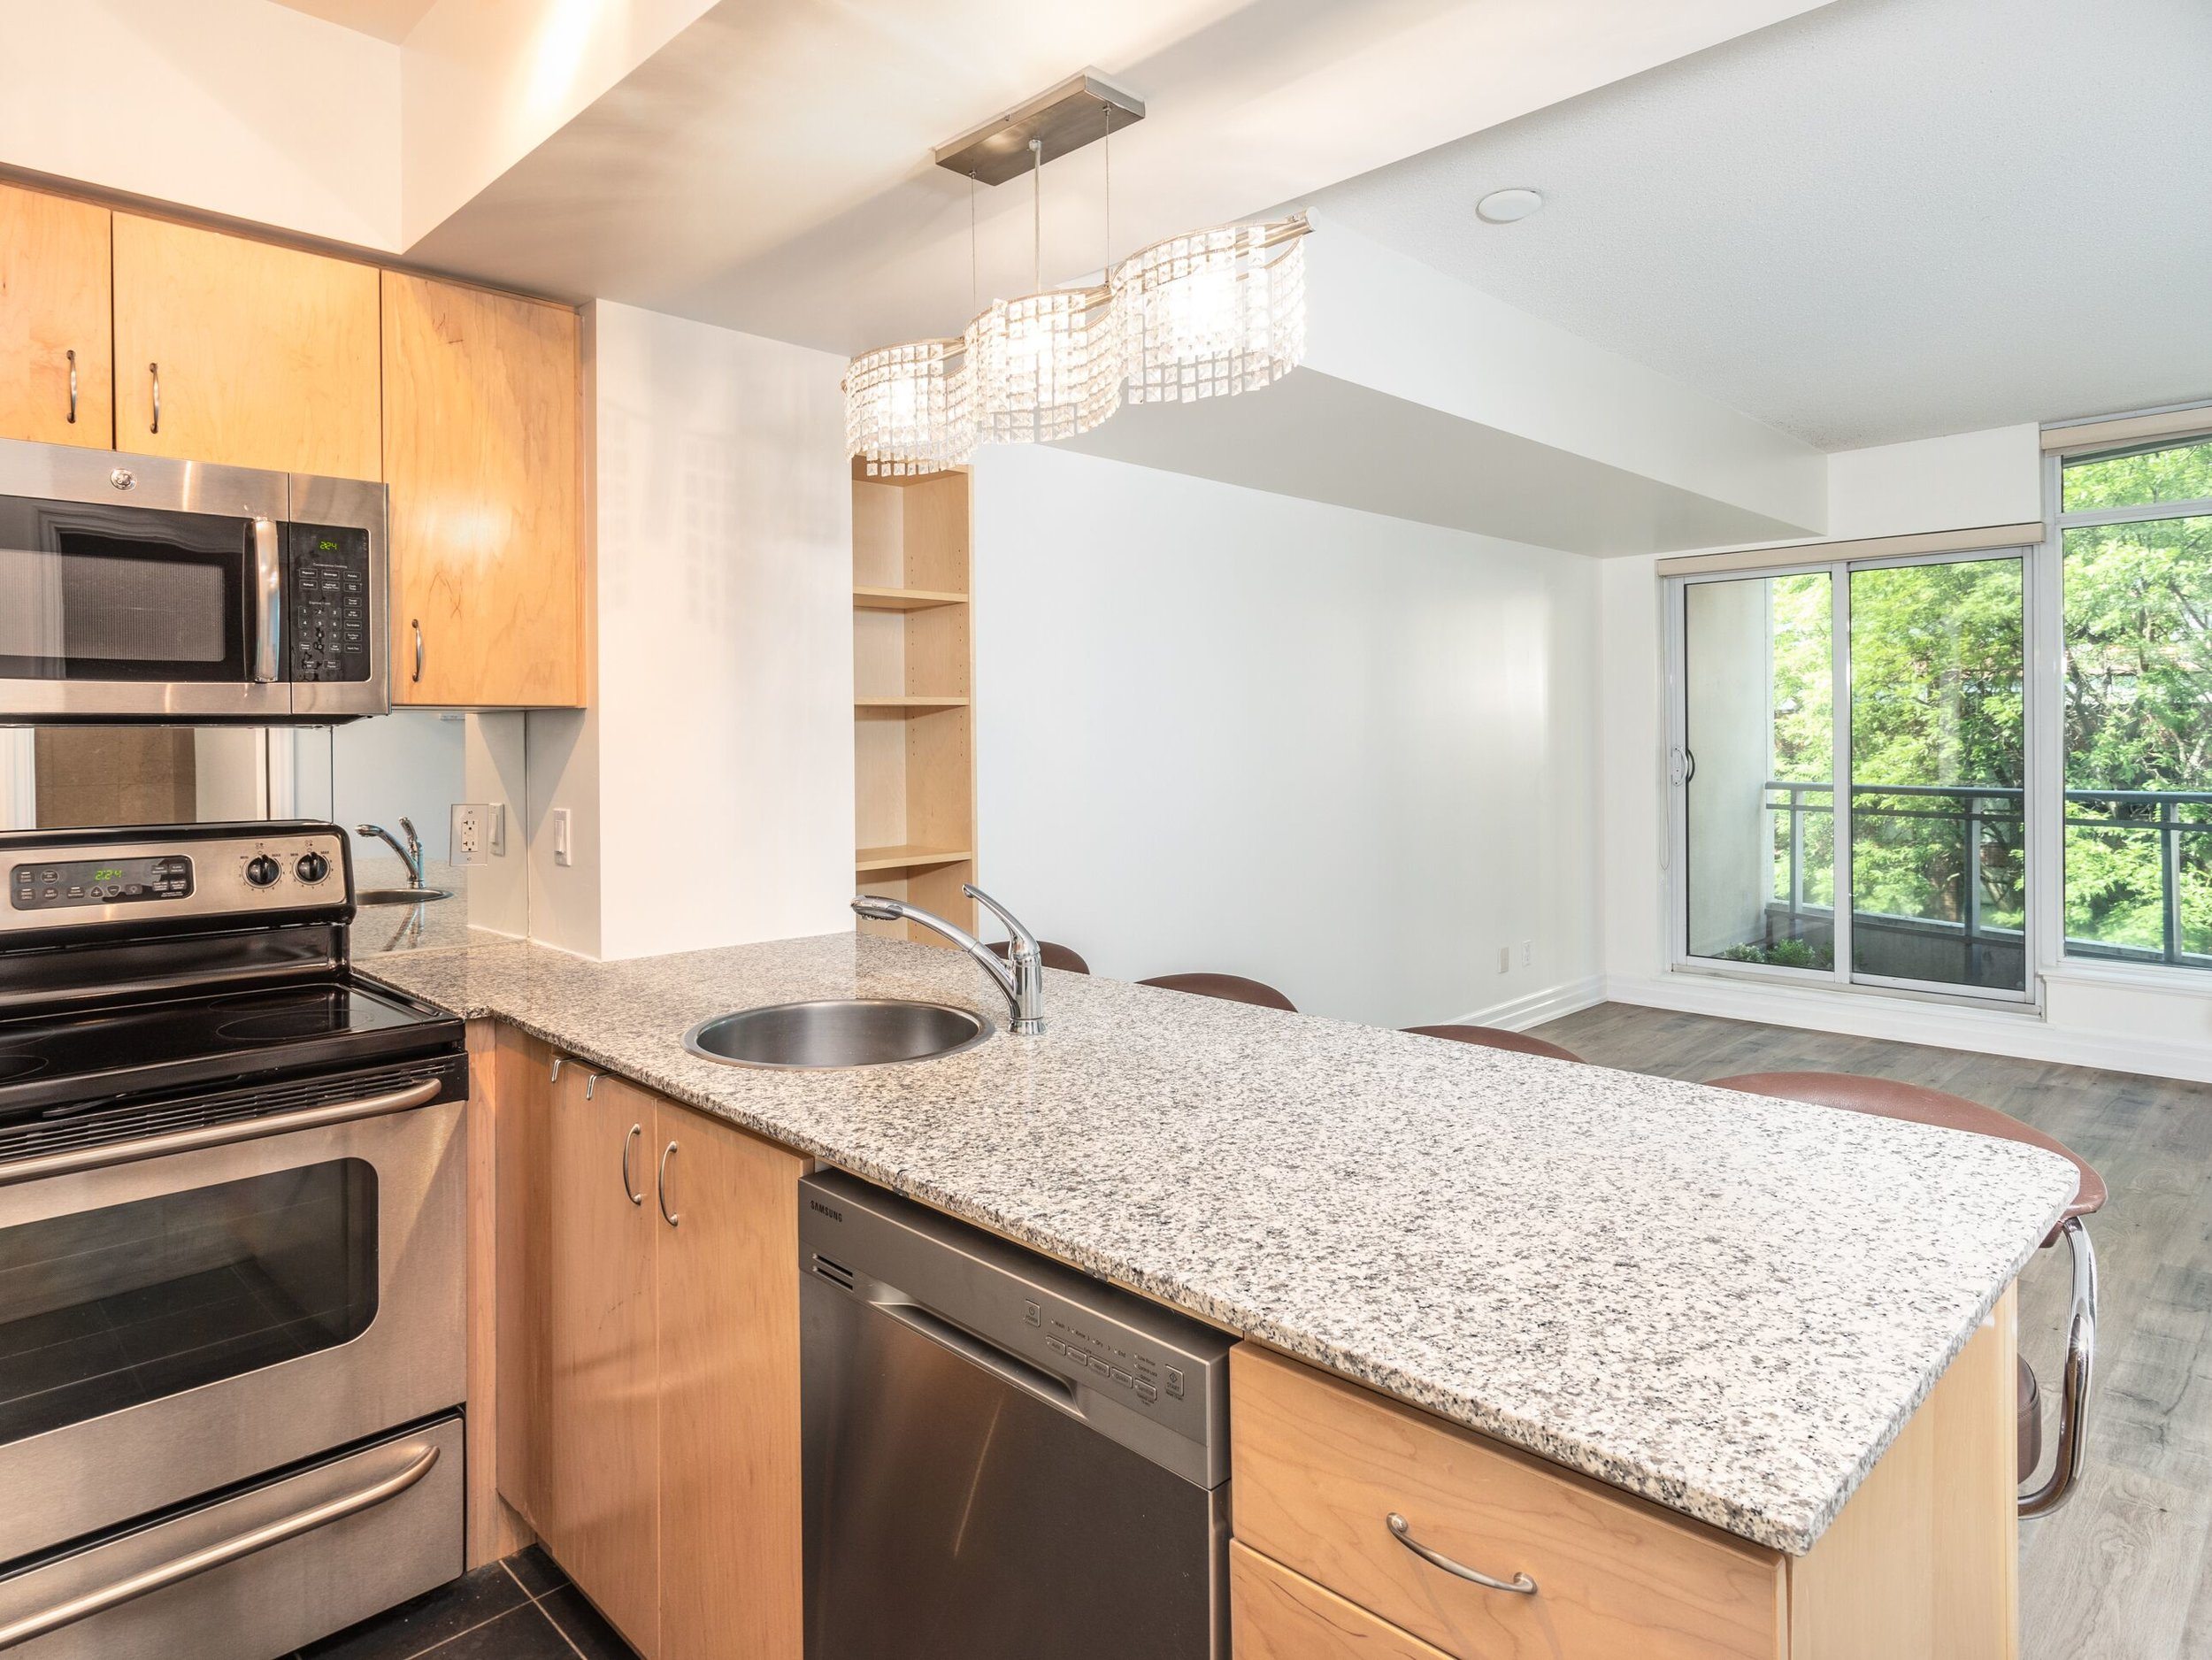 Full size stainless steel appliances